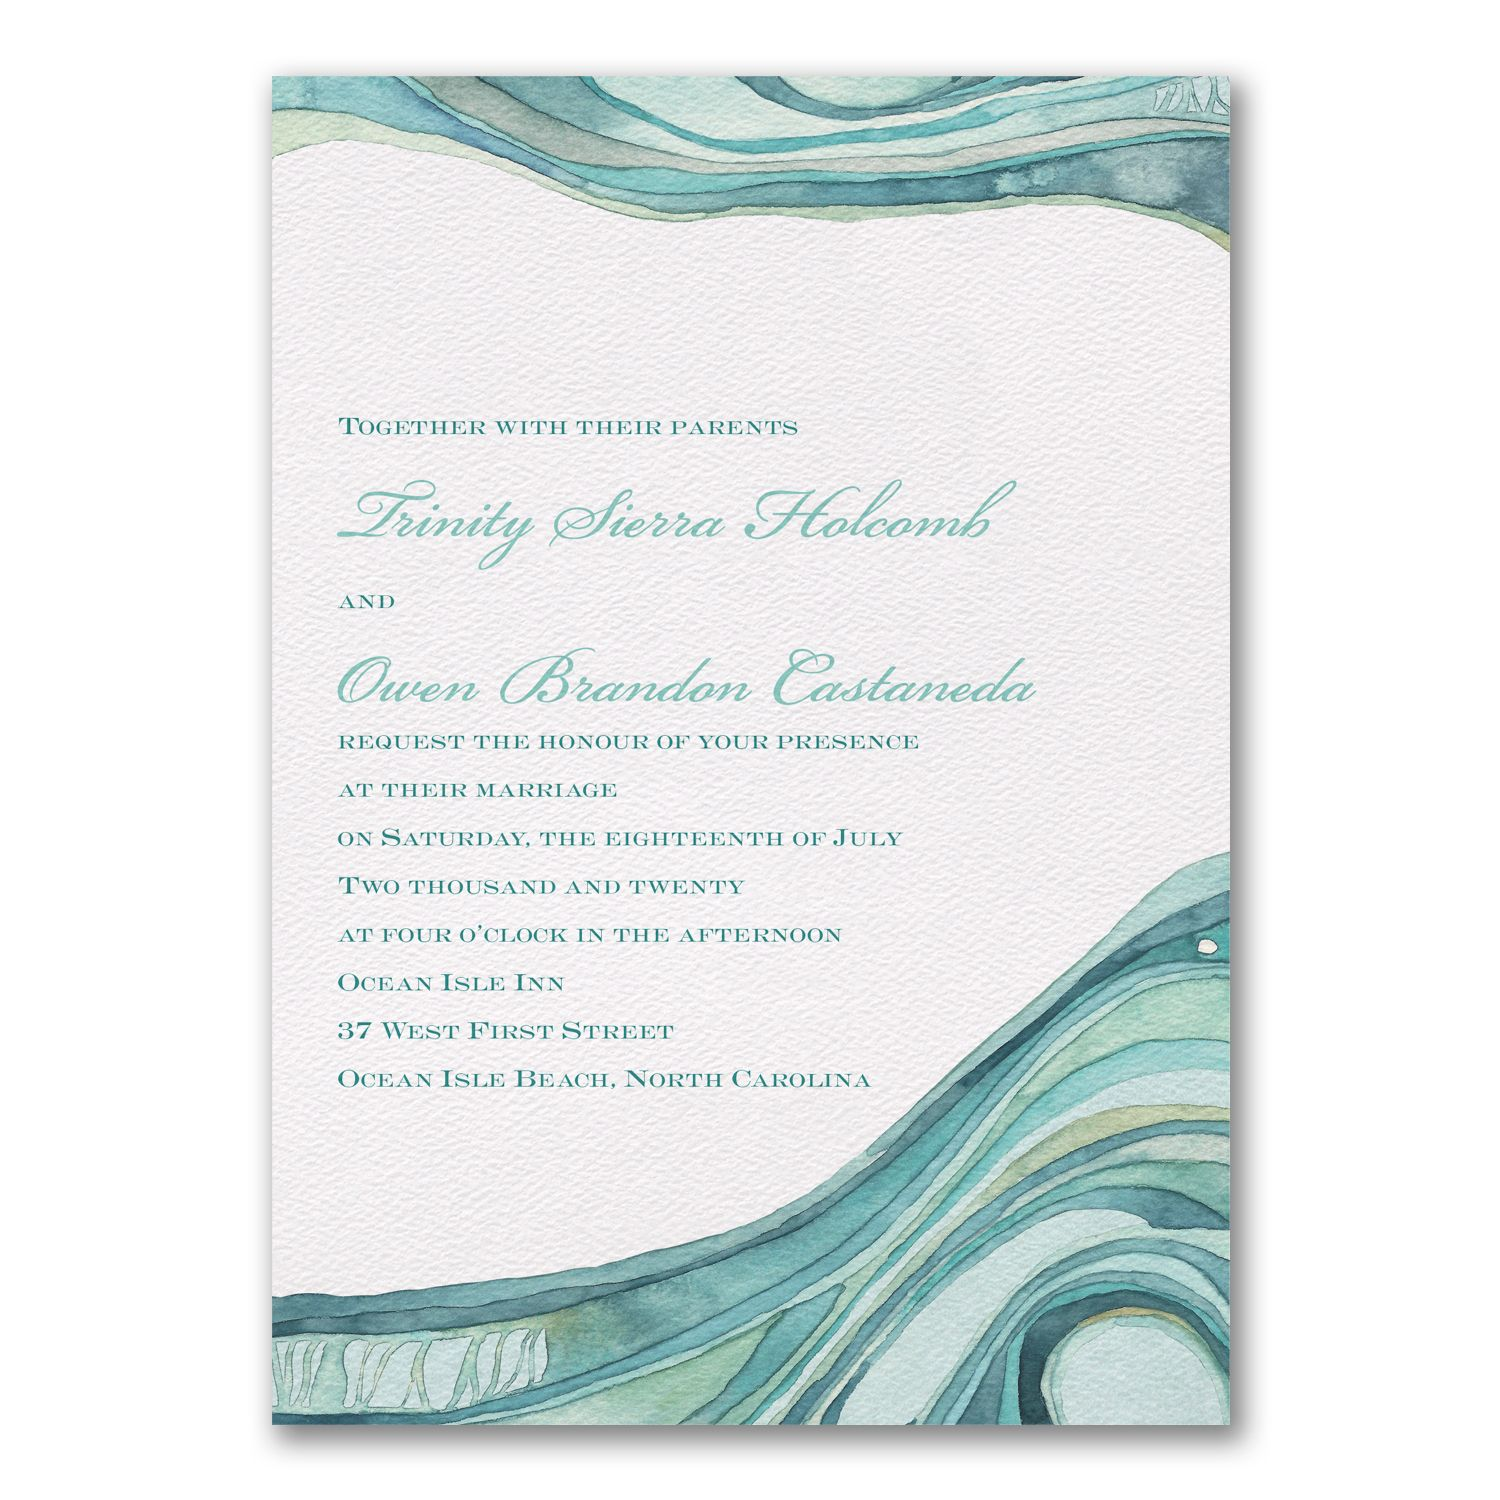 destination wedding invitation rsvp date%0A Destination wedding